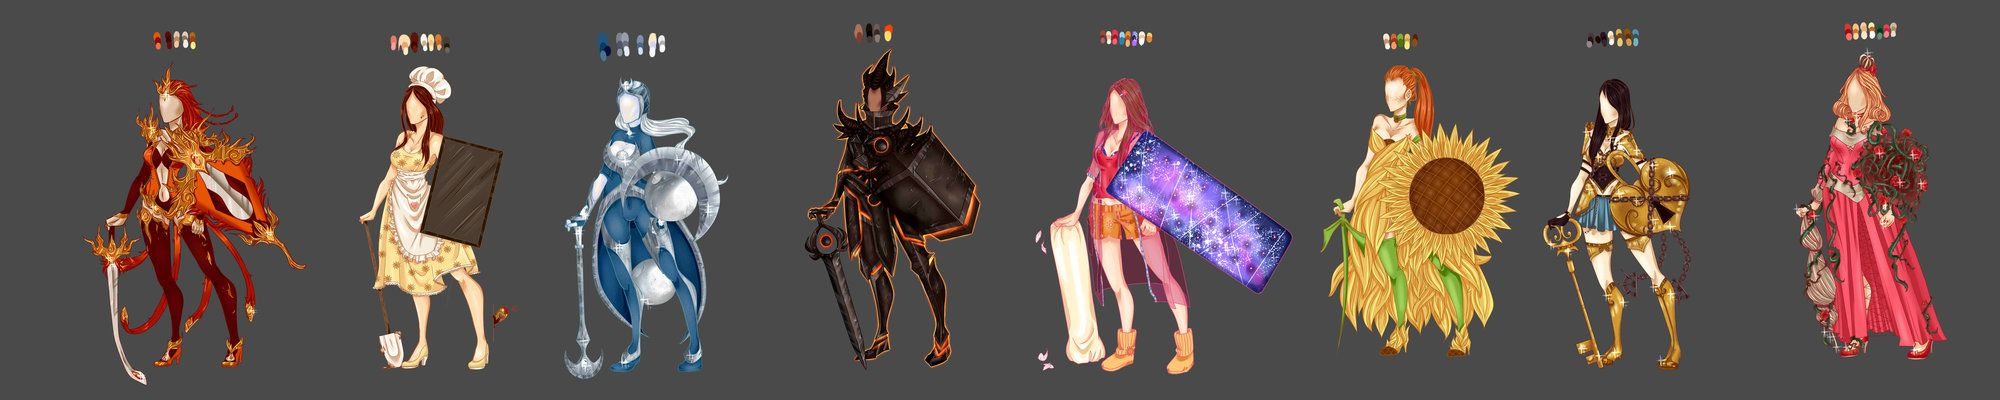 Leona Skin Concepts By Carhingin League Of Legends League Of